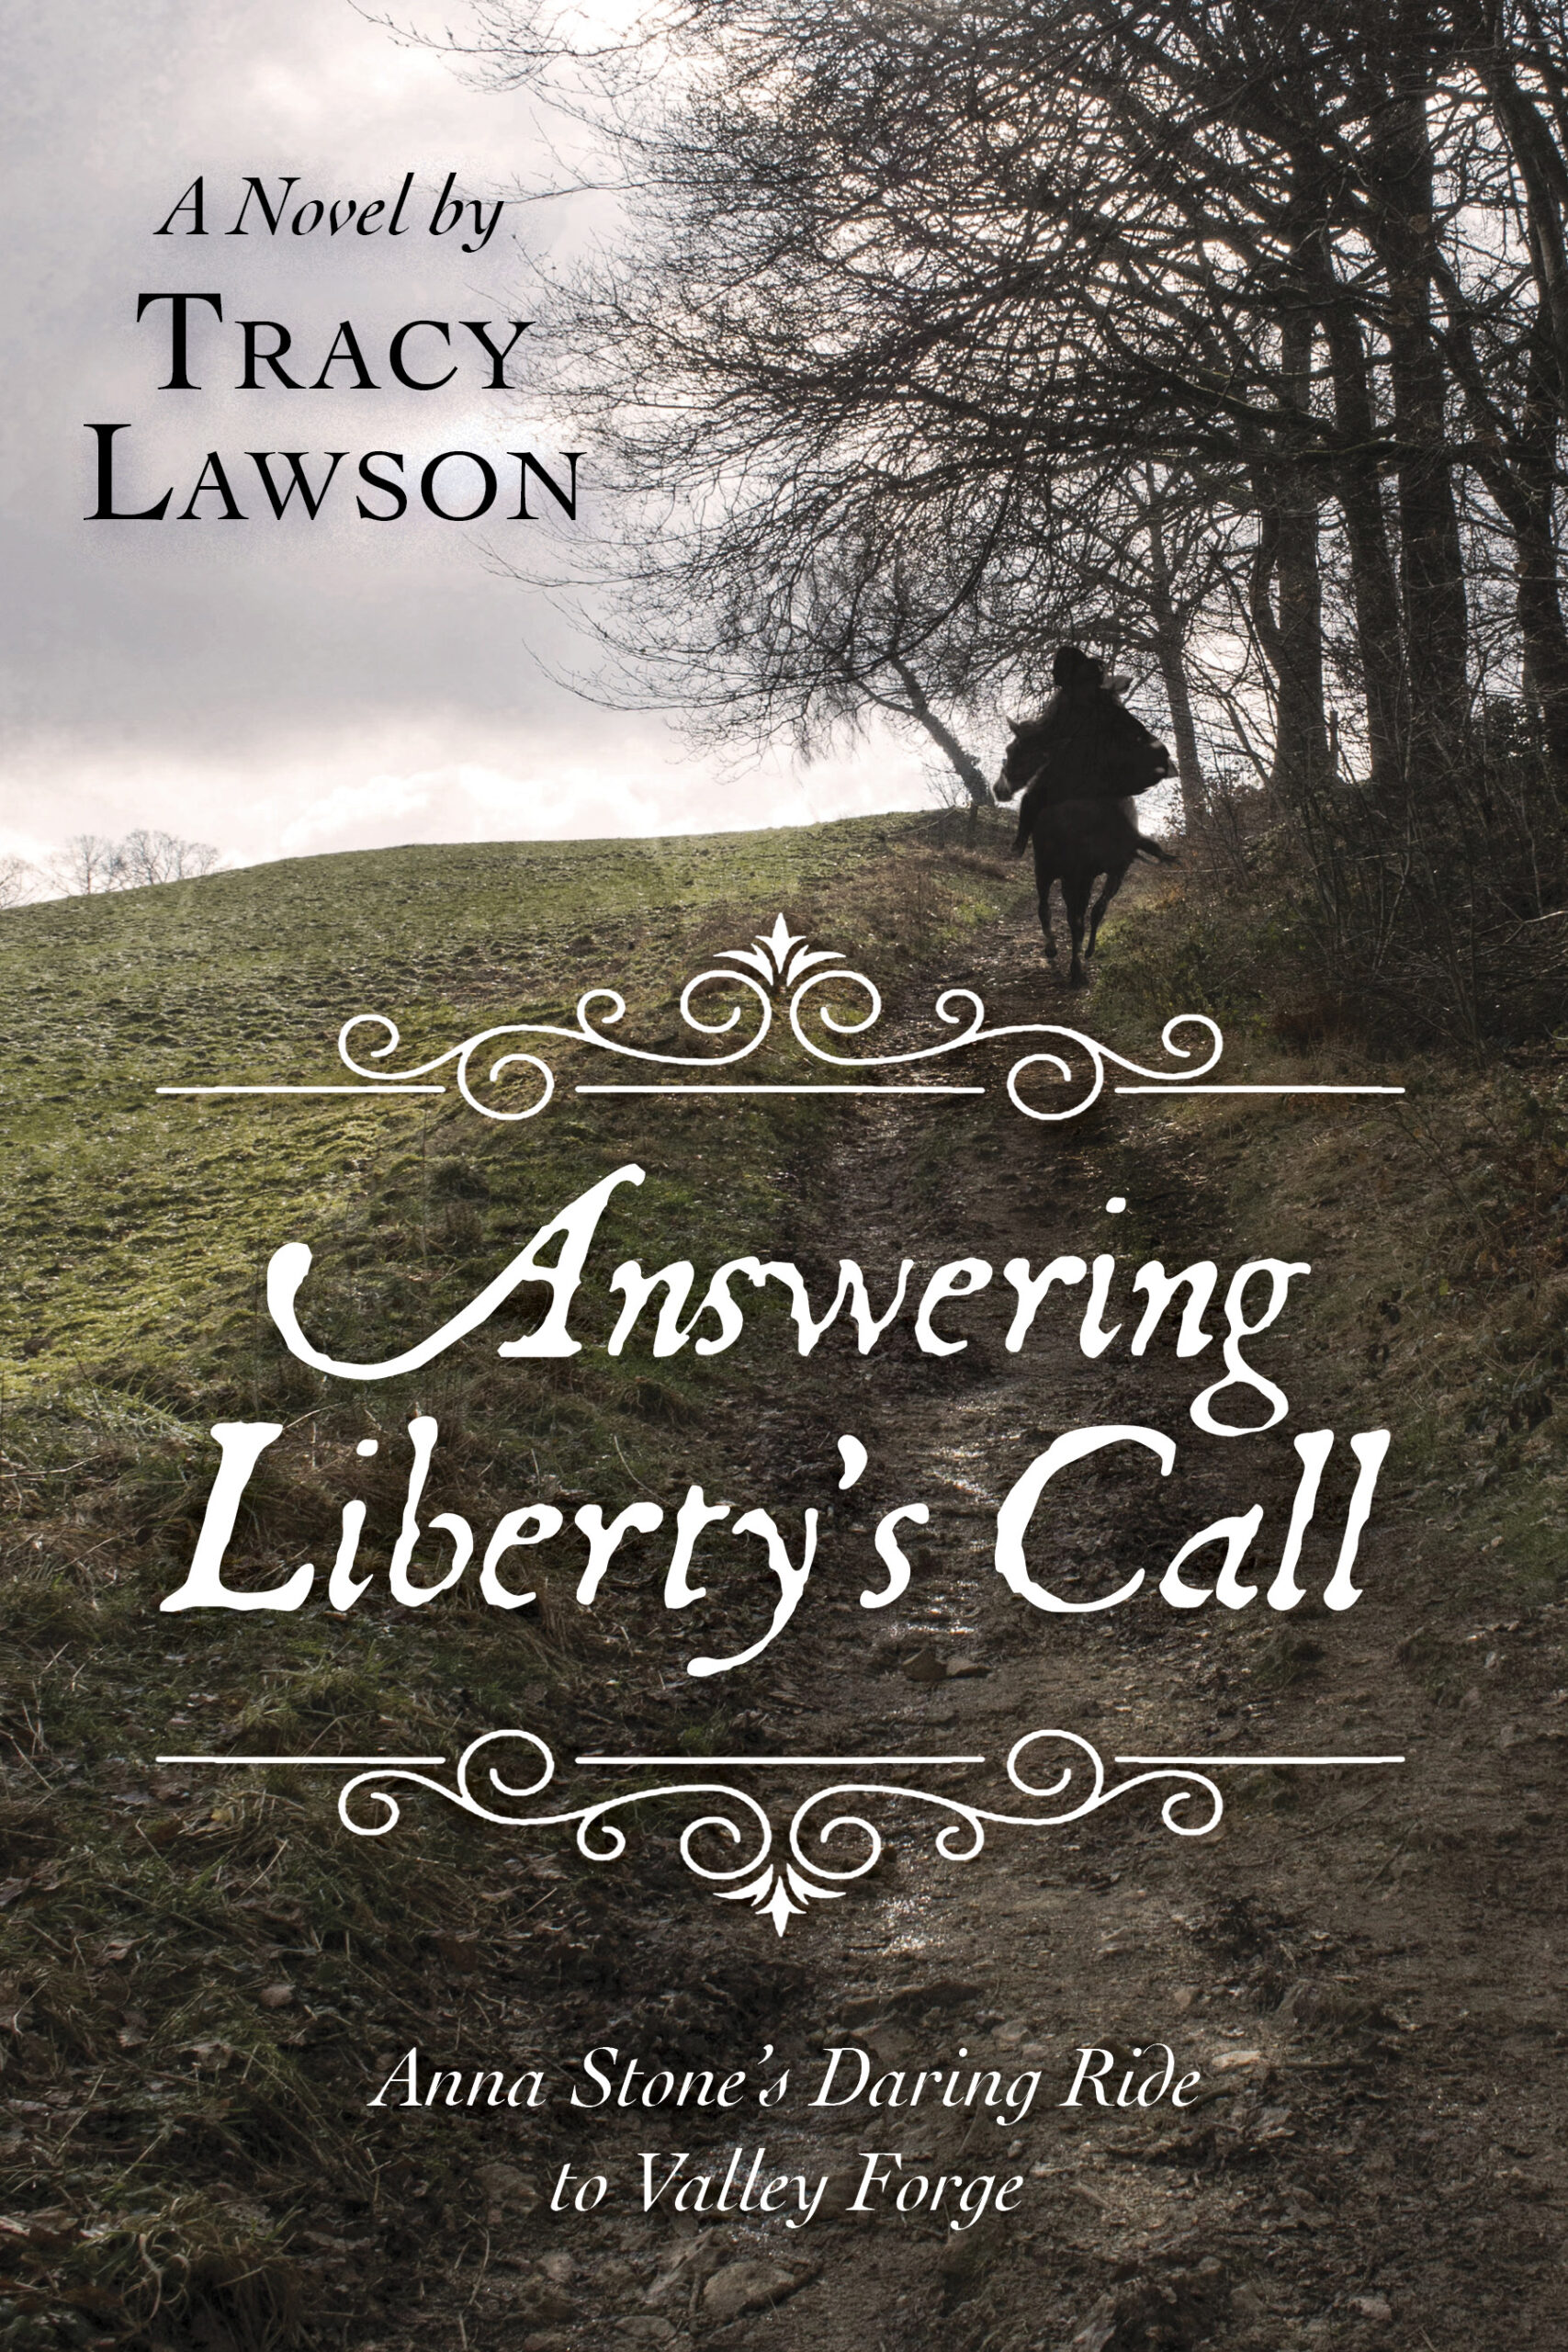 Answering Libertys Call